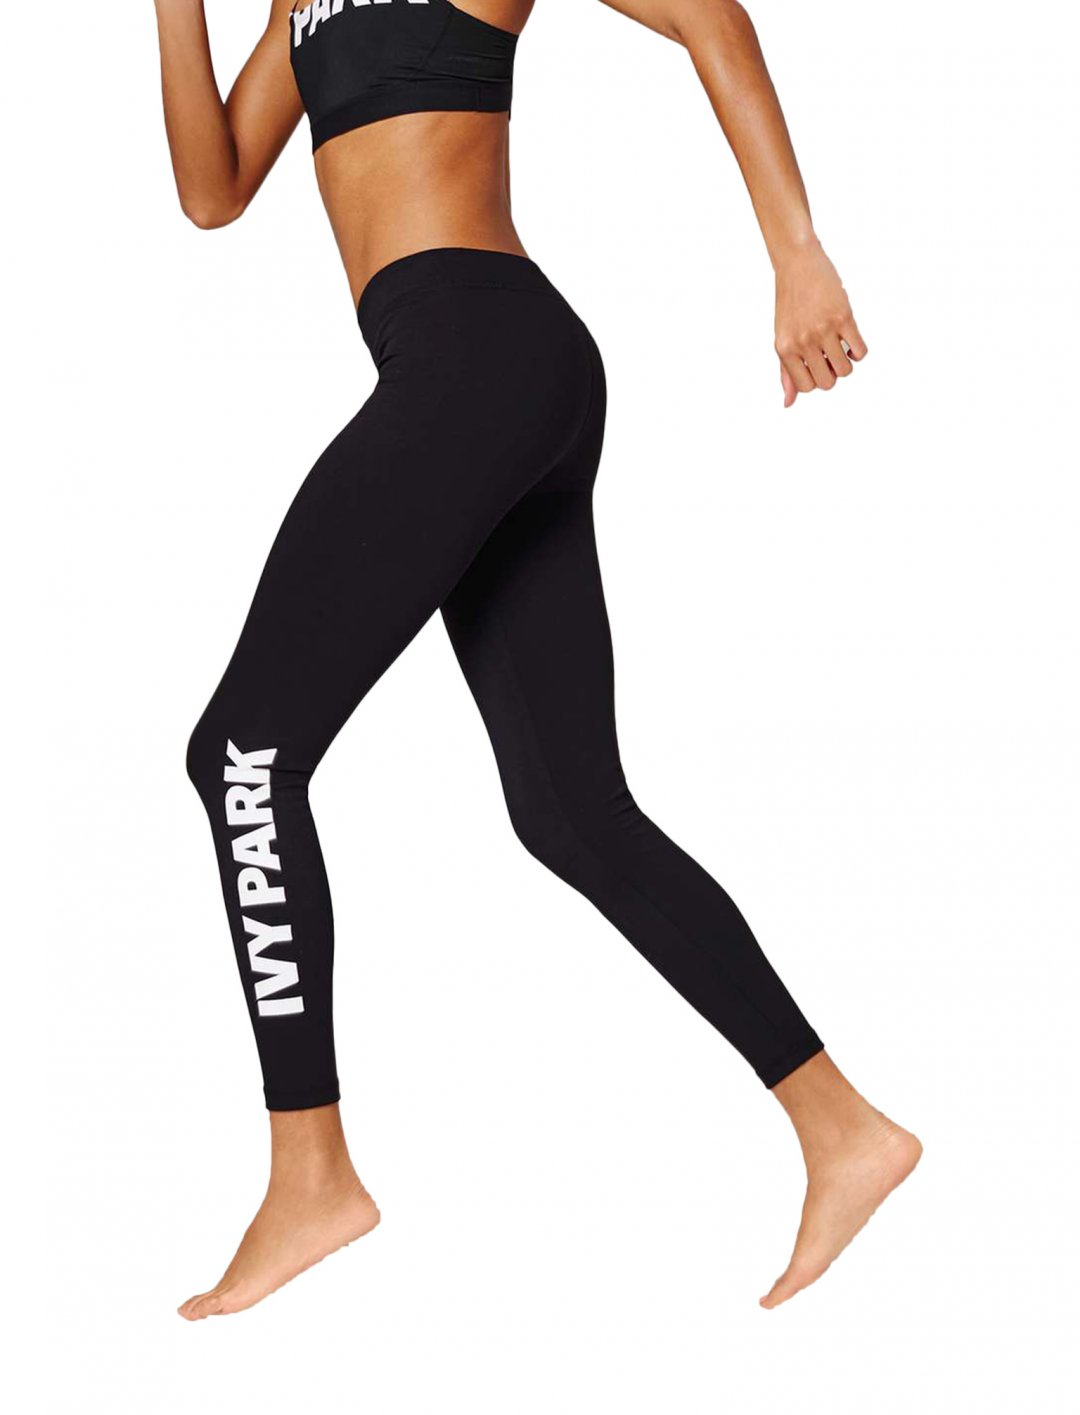 """Ivy Park Leggings {""""id"""":5,""""product_section_id"""":1,""""name"""":""""Clothing"""",""""order"""":5} Ivy Park"""